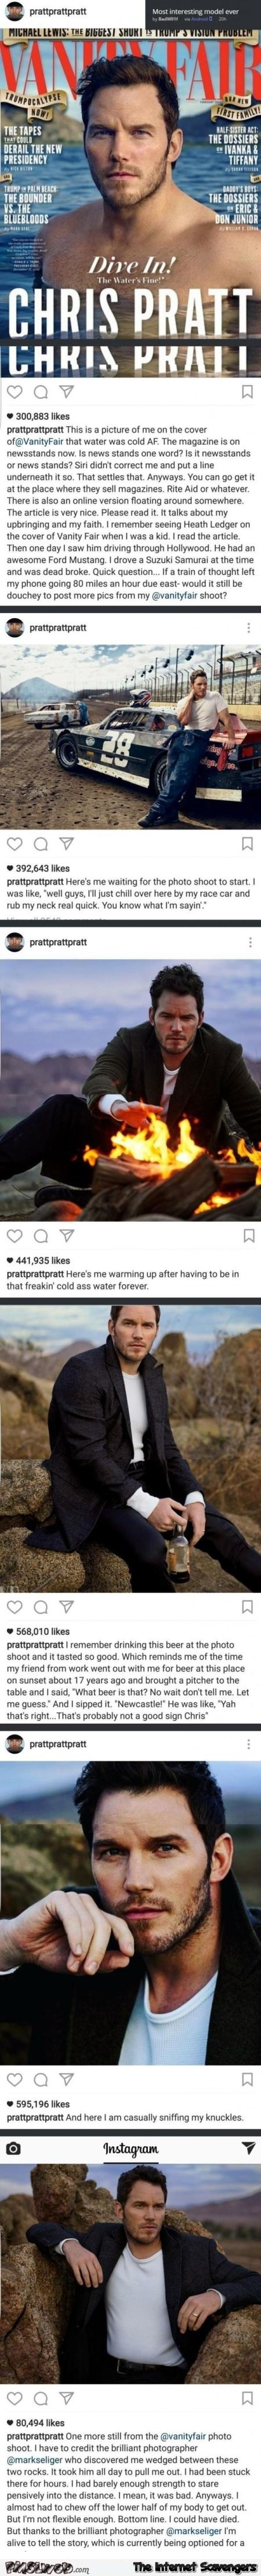 Funny Chris Pratt comments on Vanity Fair photo shooting @PMSLweb.com